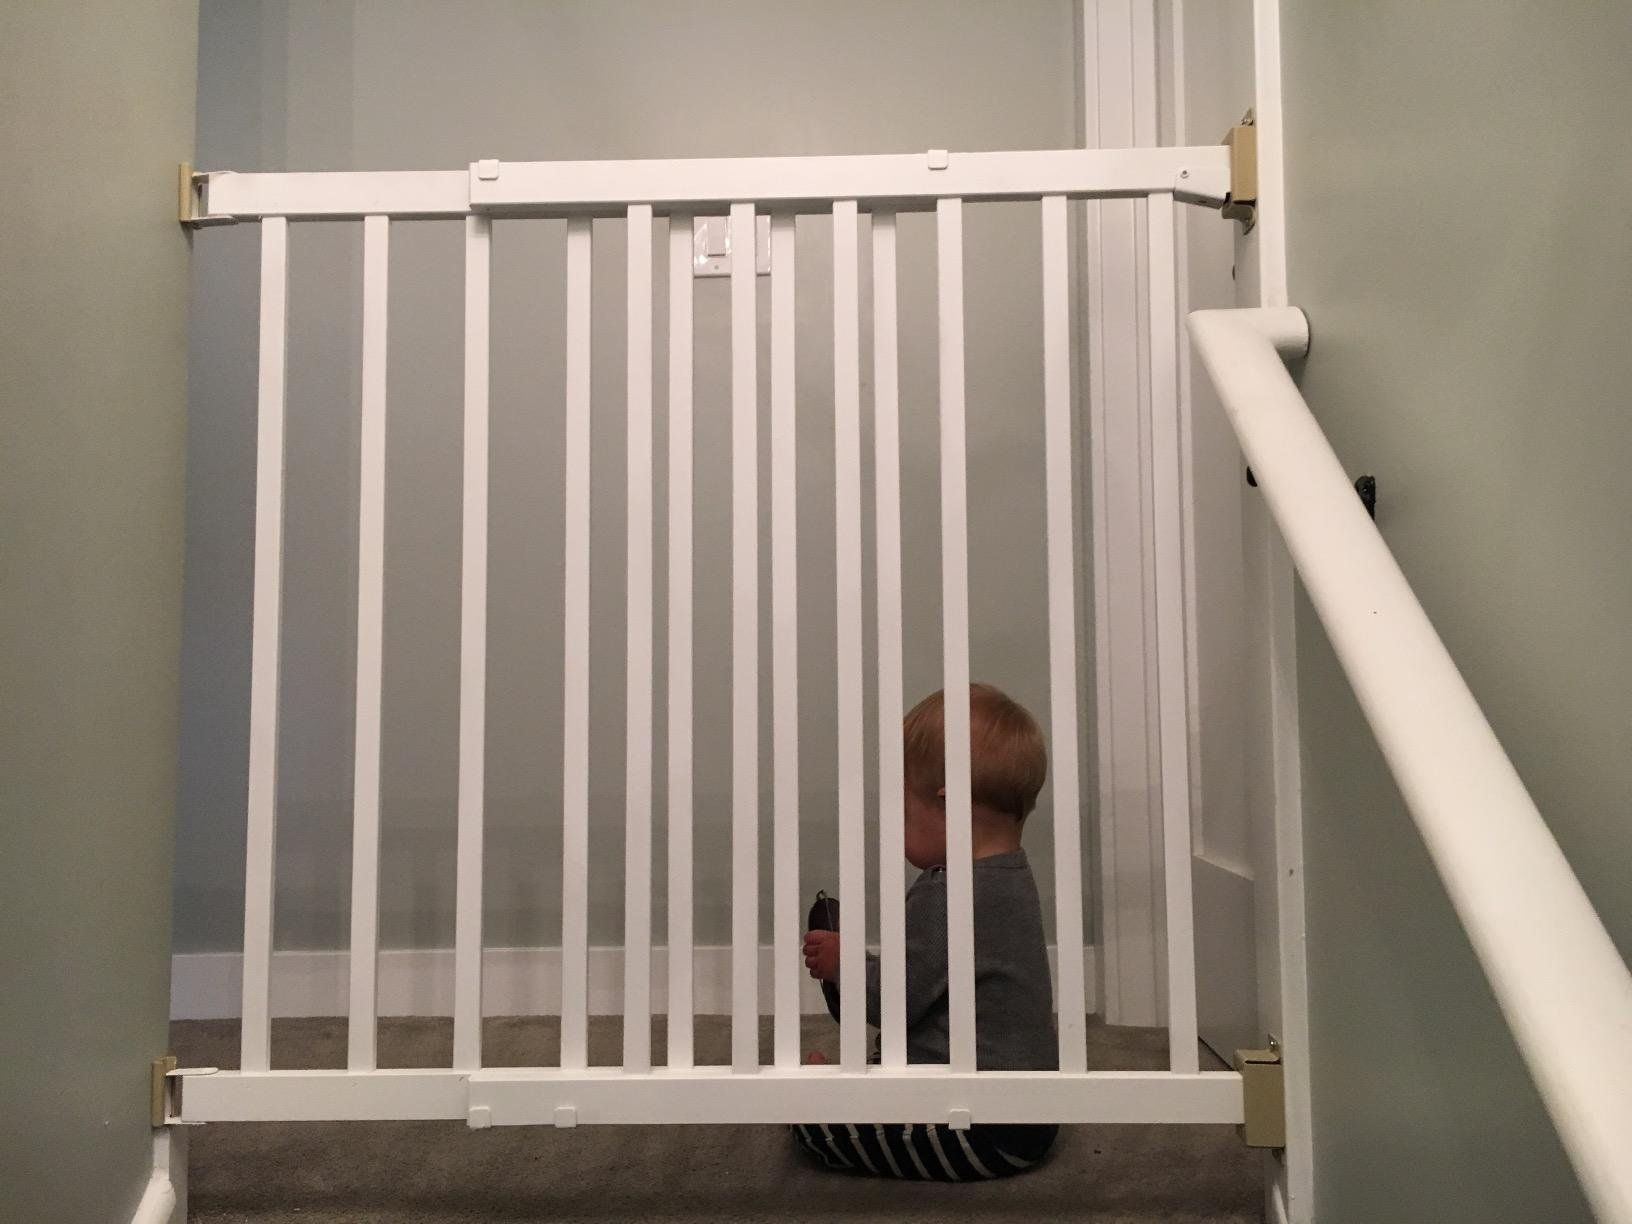 Evenflo Top of Stair Plus Gate Baby Decor